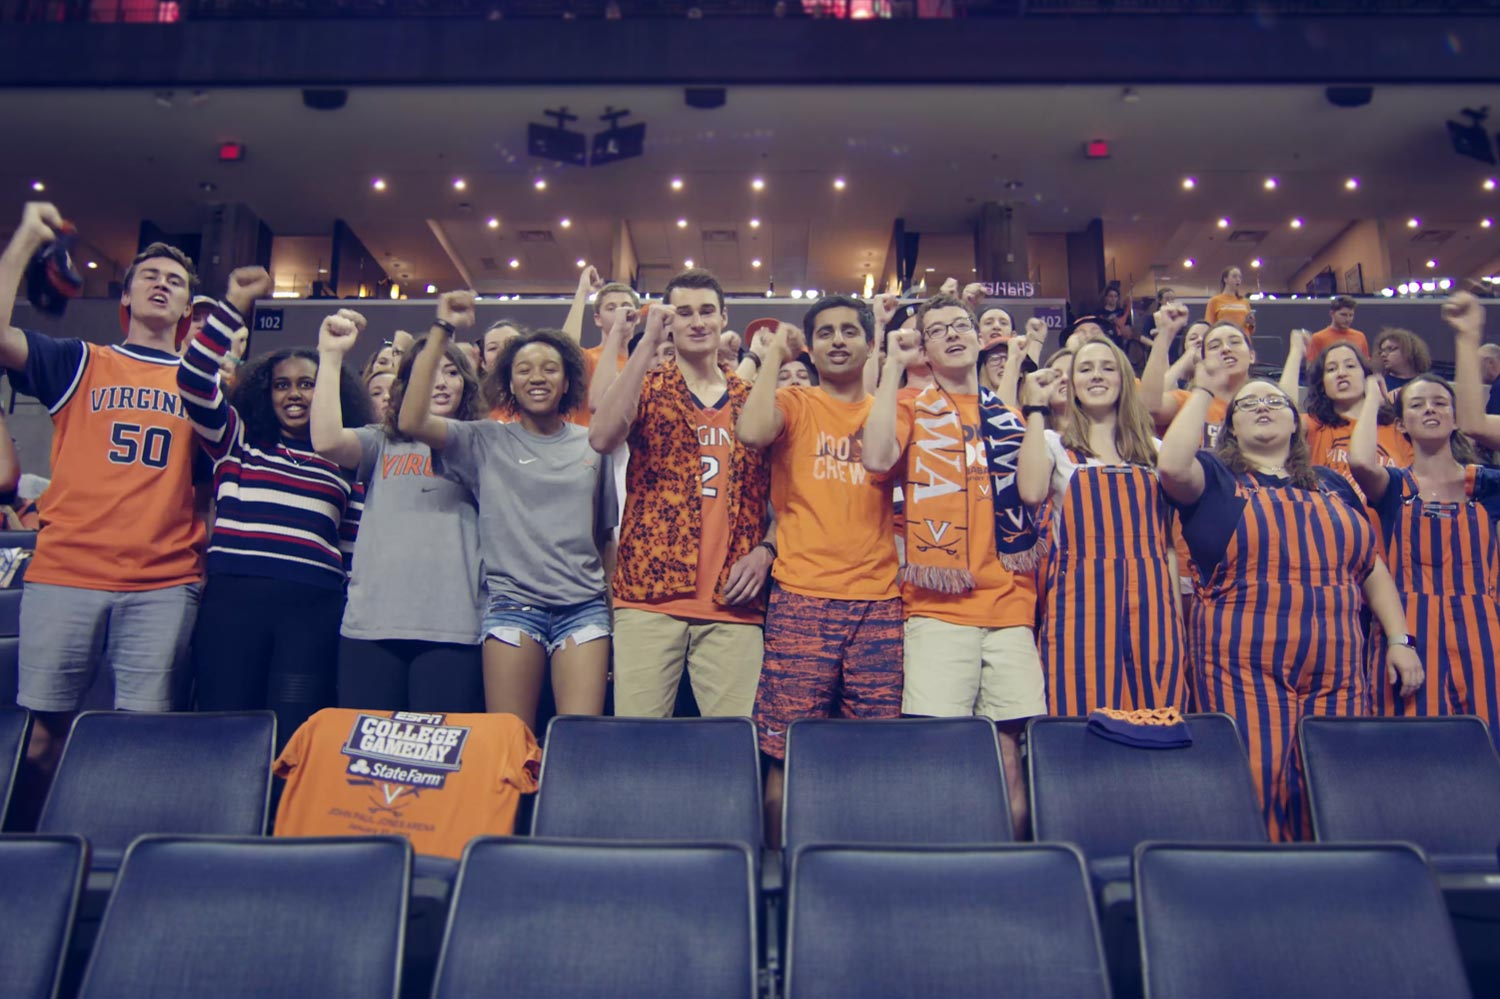 The Hoo Crew has made John Paul Jones Arena one of the most raucous college basketball venues in the nation.